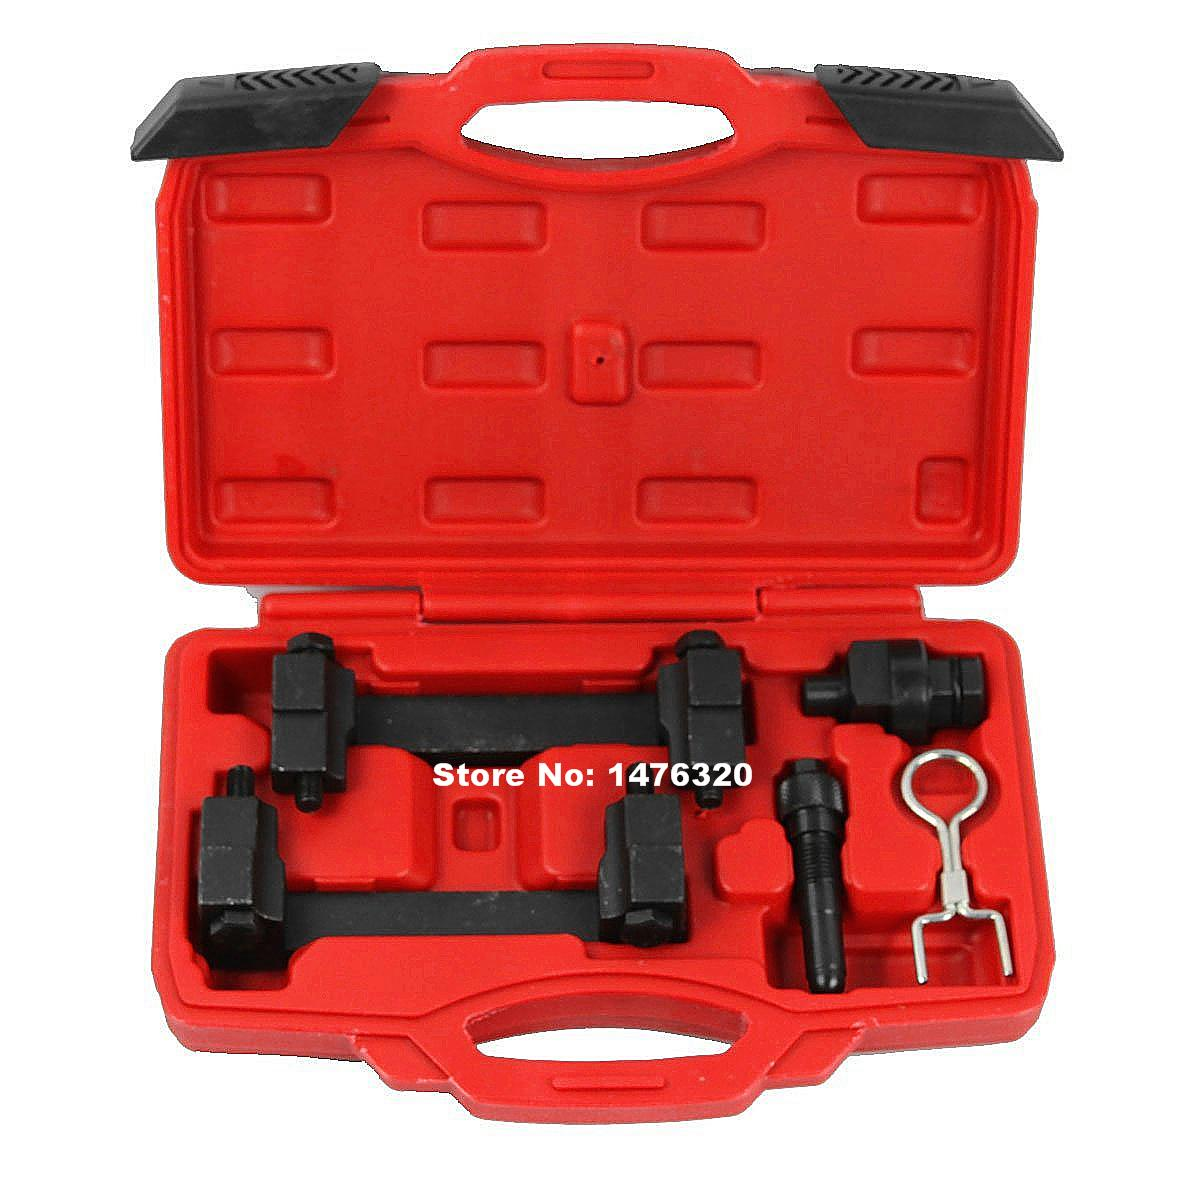 Auto Engine Camshaft Locking Alignment Timing Tool Car Repair Garage Tools Kit For VW Audi VAG 2.4/3.2 FSI V6 V8 V10 AT2070 engine timing crankshaft locking setting tool kit for vw audi seat skoda vag 1 6